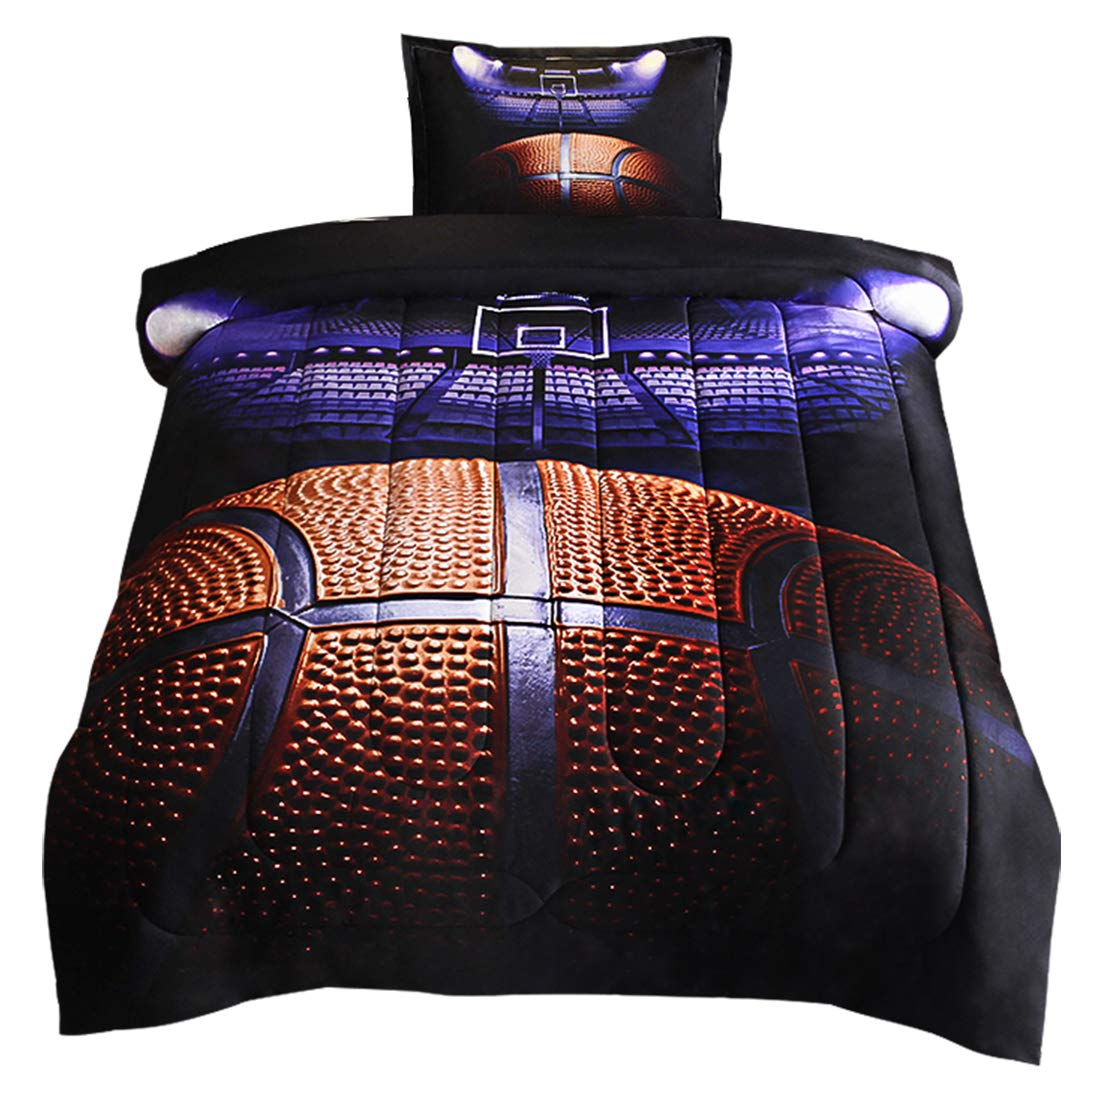 JQinHome Twin Basketball Court Comforter Sets Blanket, 3D Sports Themed Bedding, All-Season Reversible Quilted Duvet, for Children Boy Girl Teen Kids - Includes 1 Comforter, 1 Pillow Sham